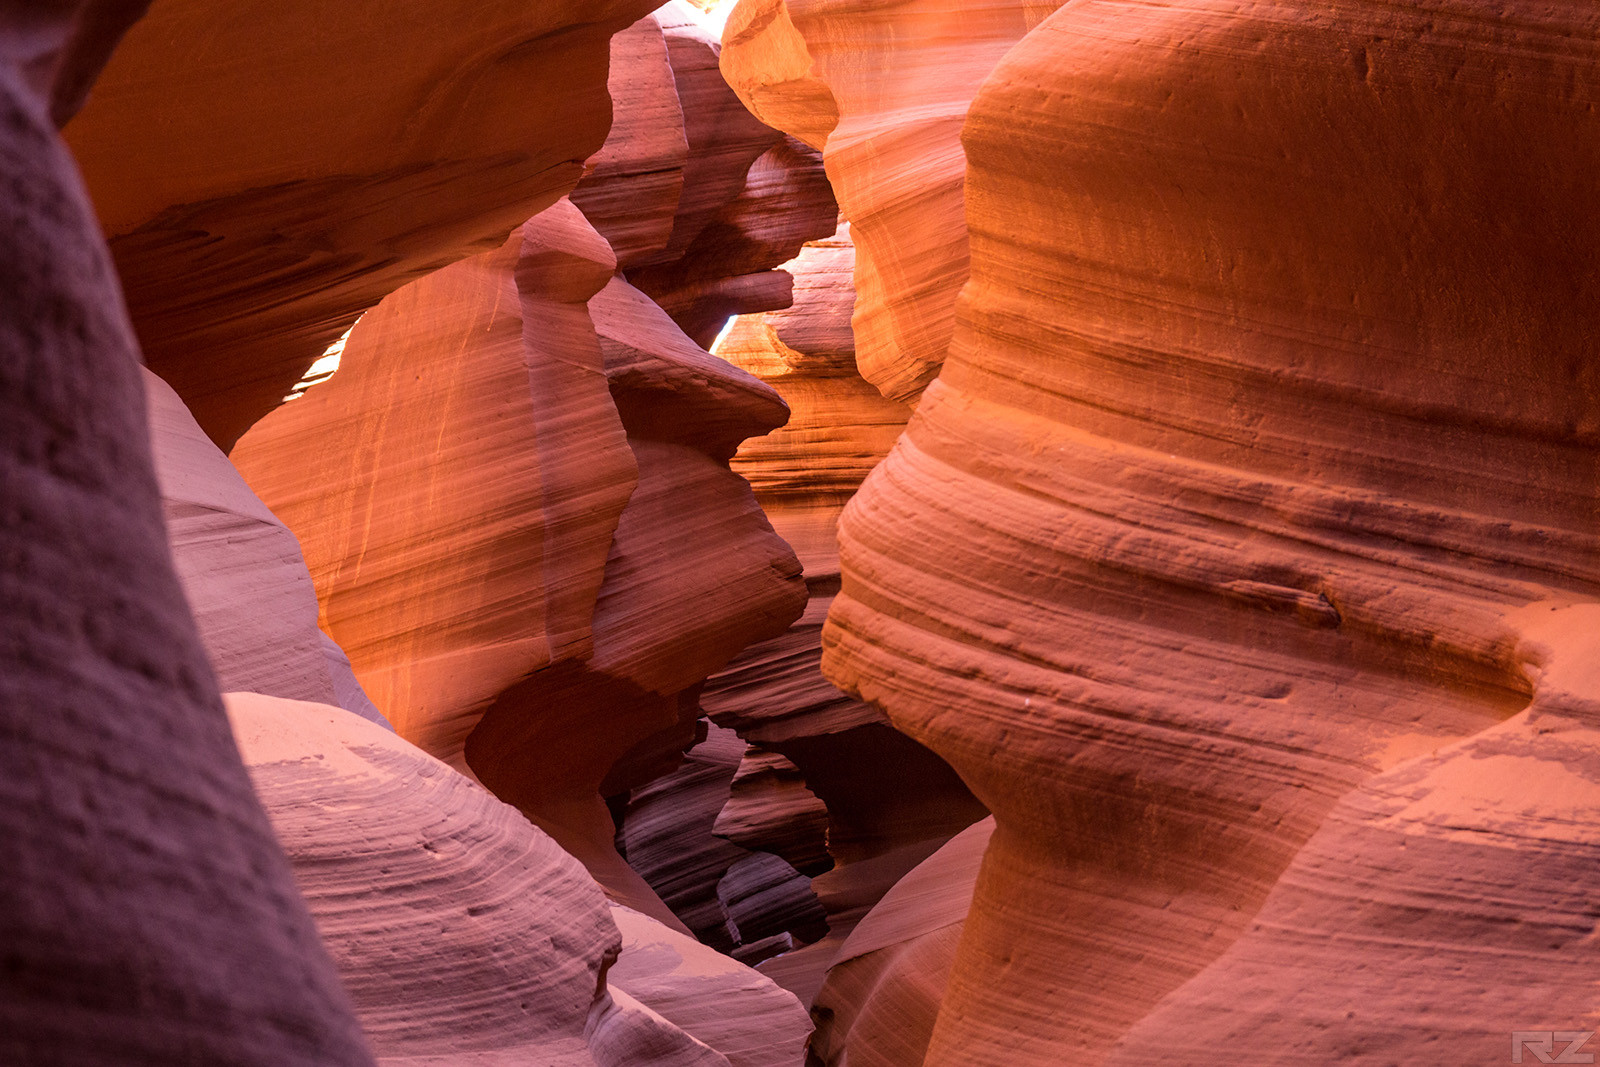 antelope_canyon_arizona_02